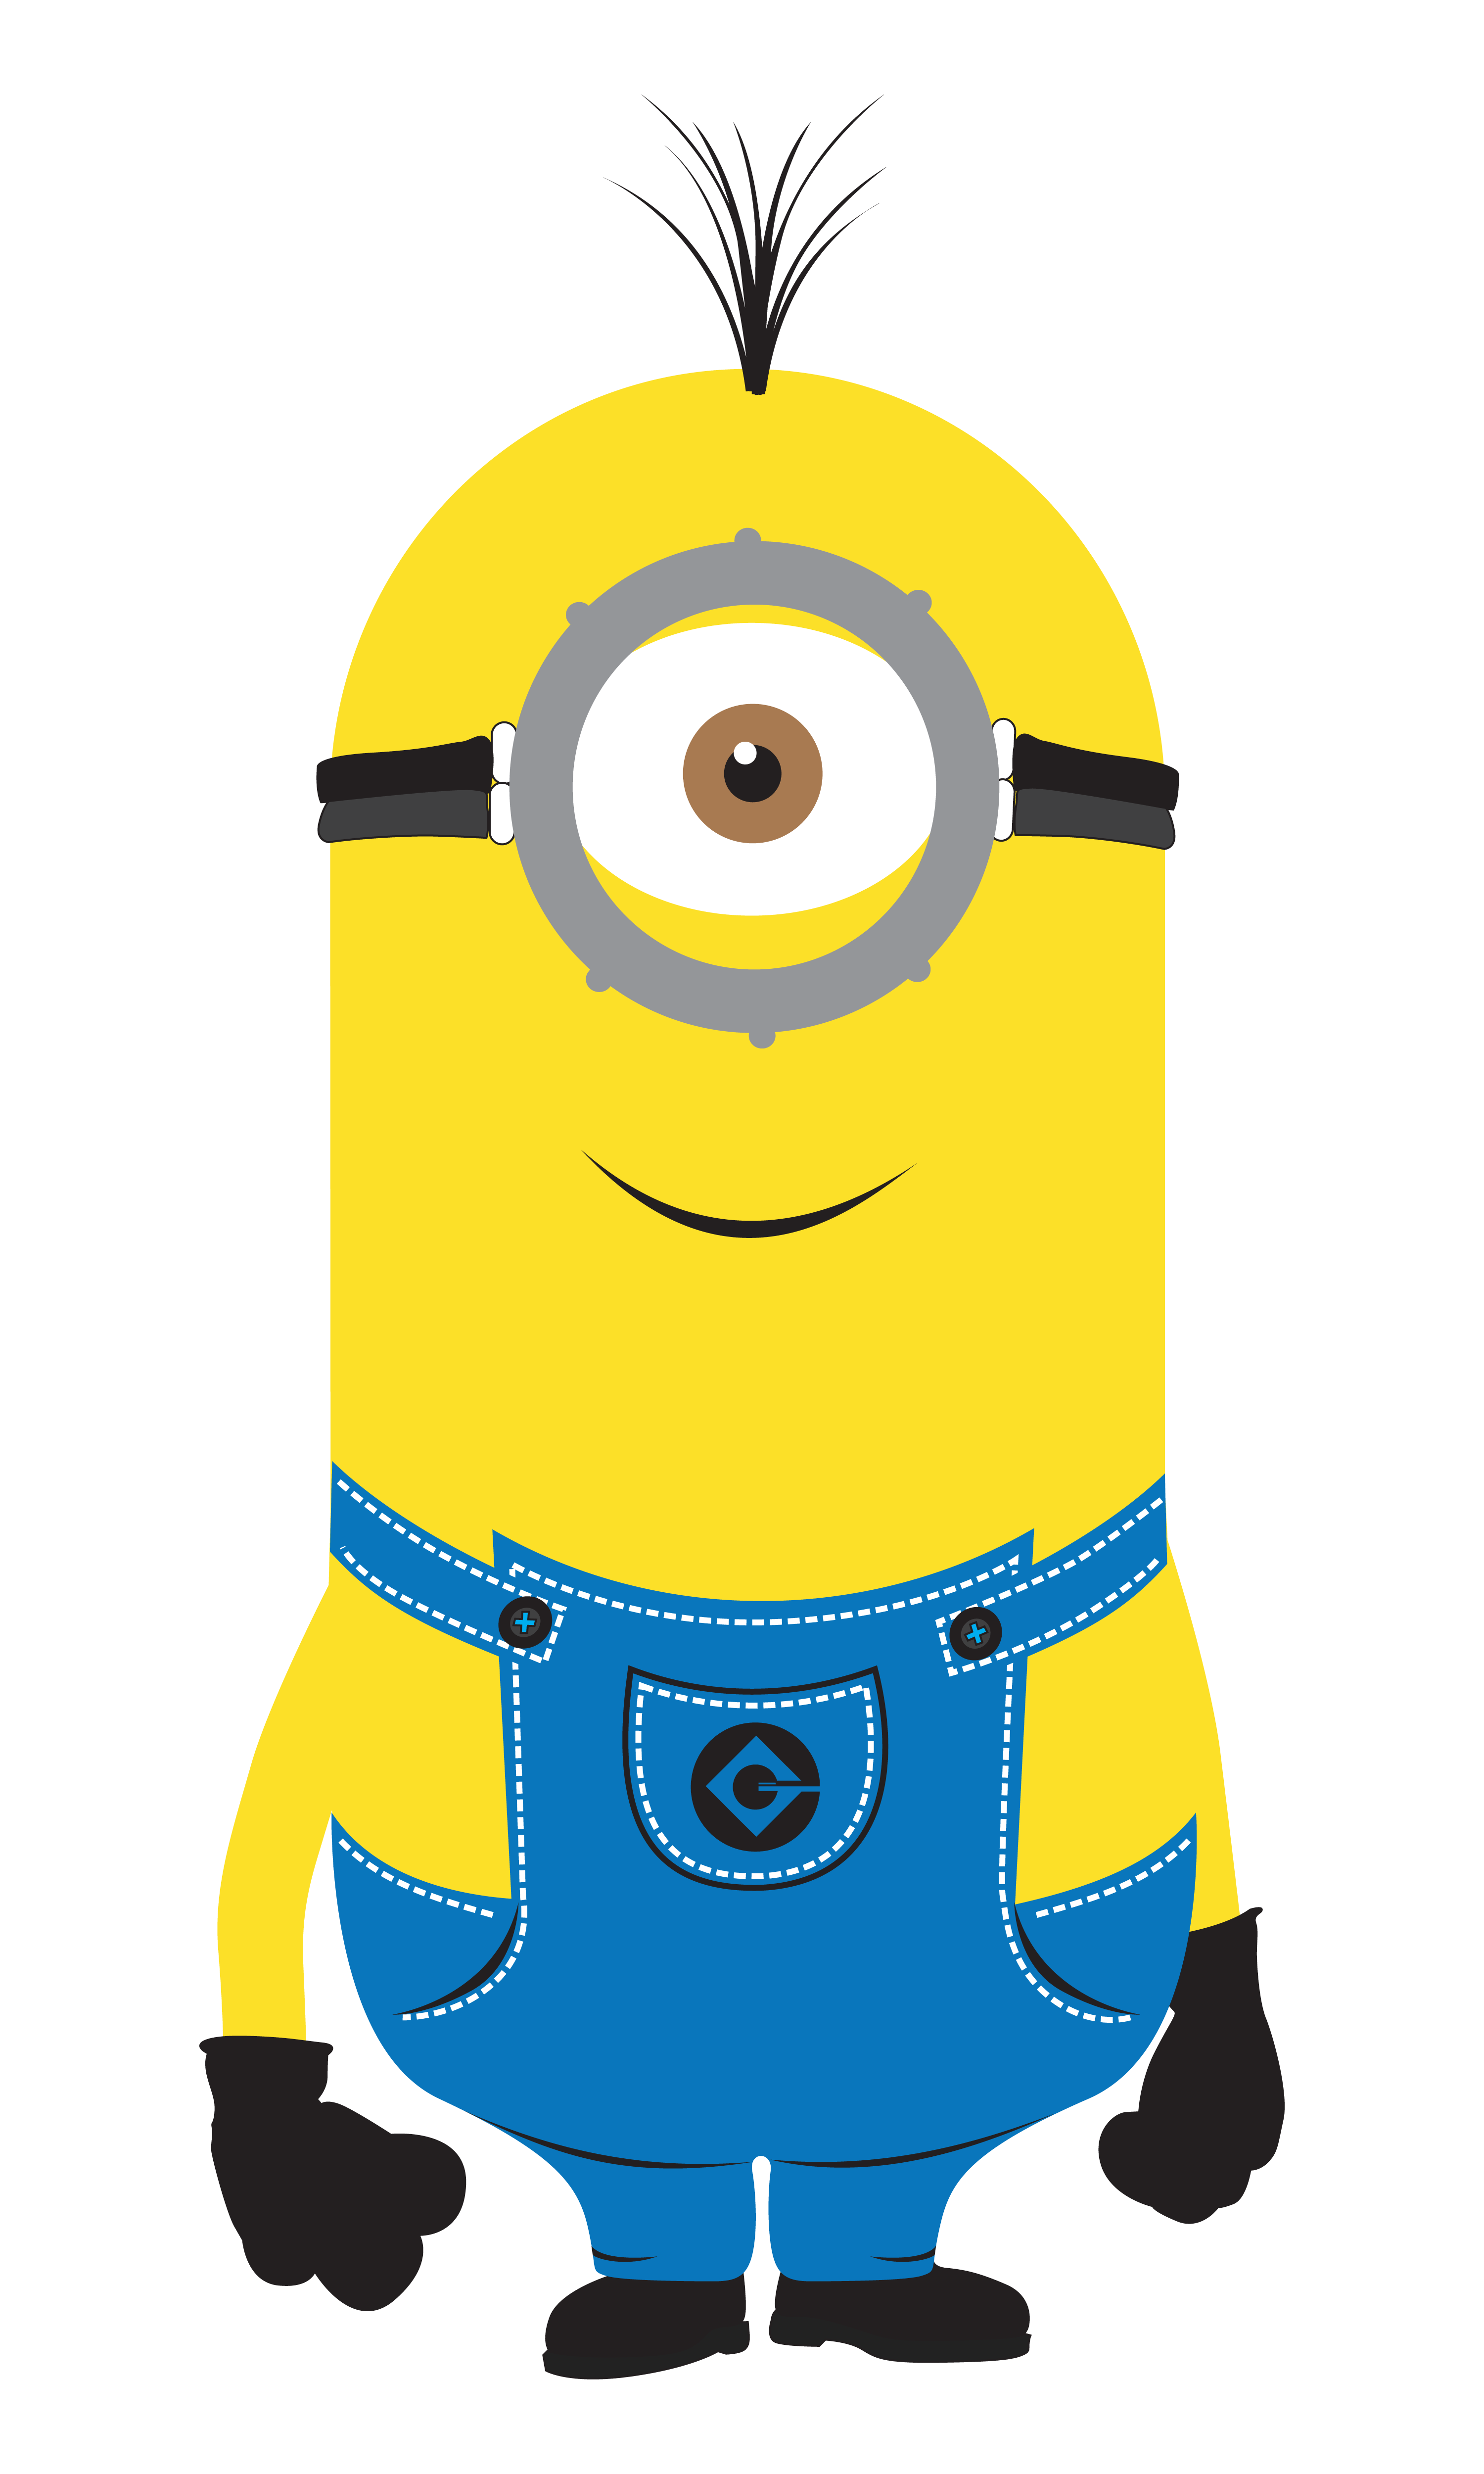 Microsoft clipart halloween png library library Minion png #42189 - Free Icons and PNG Backgrounds png library library